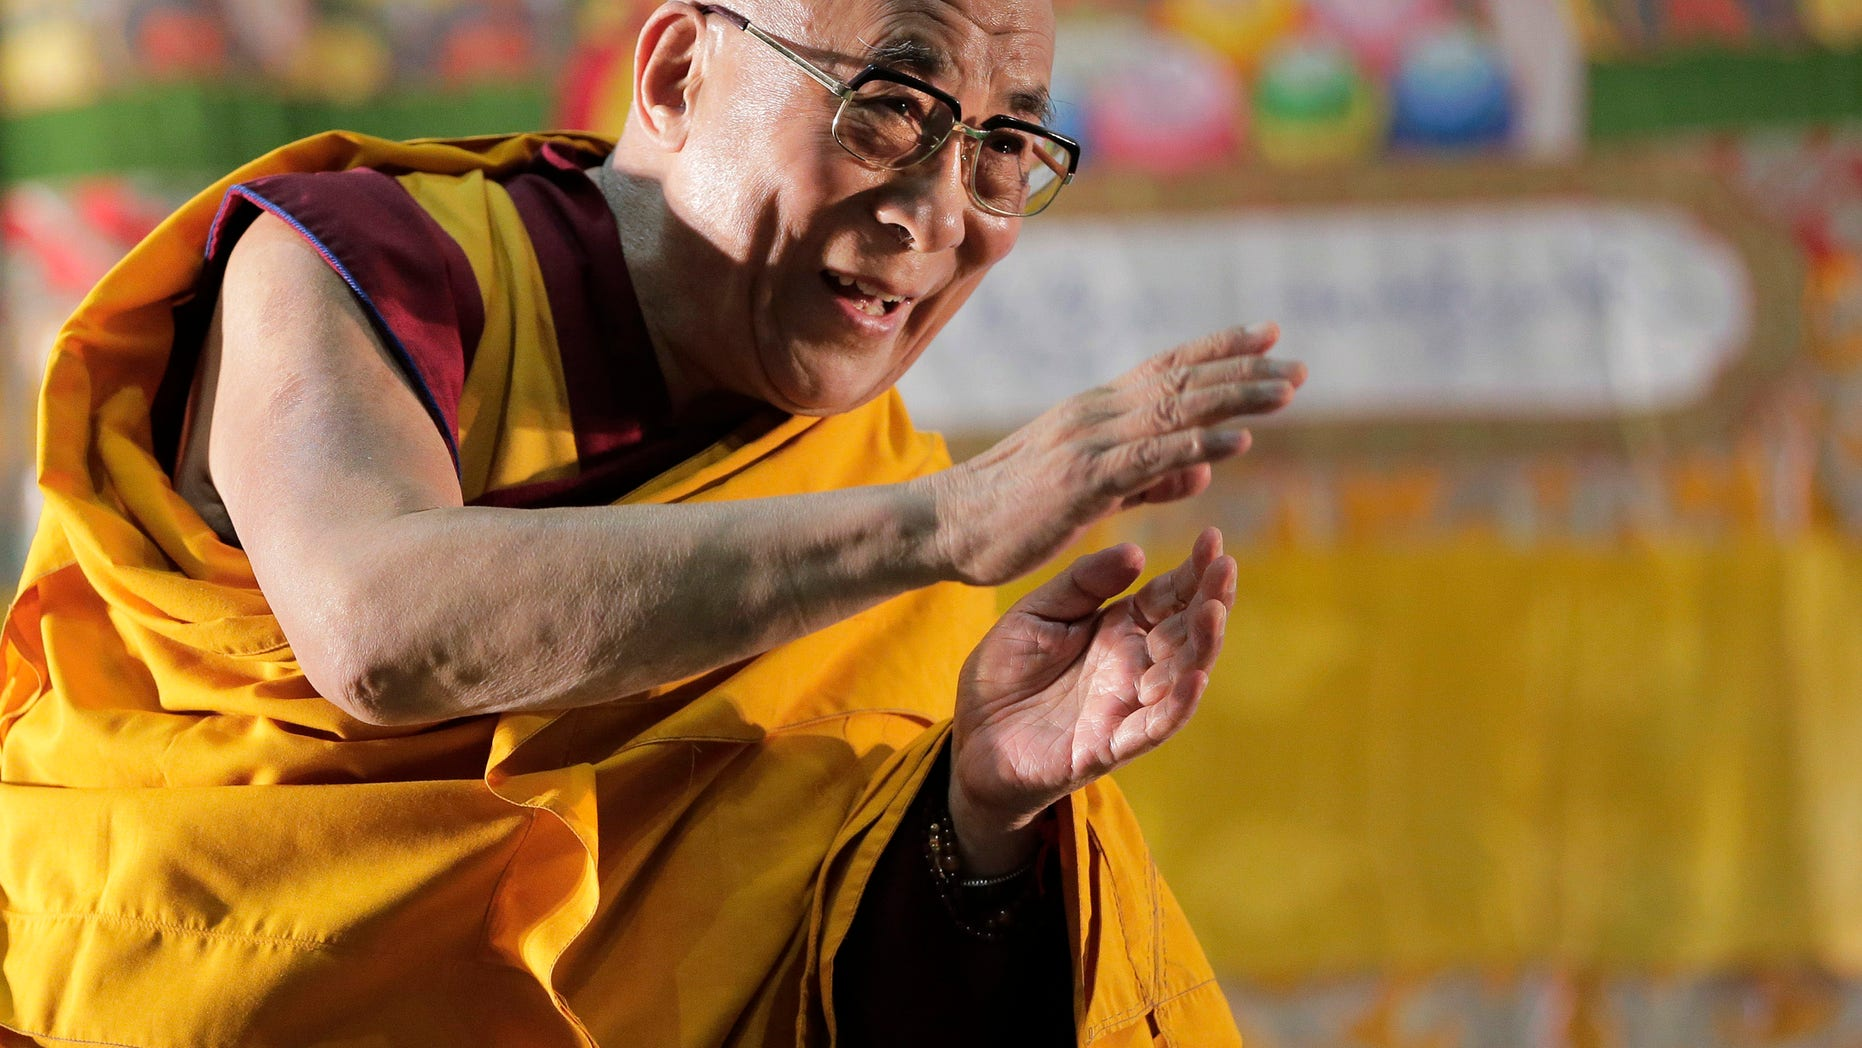 Nov. 4, 2012 - FILE of the Dalai Lama at a religious lecture in Yokohama, near Tokyo, on a 12-day visit to deliver speeches and take part in a symposium.